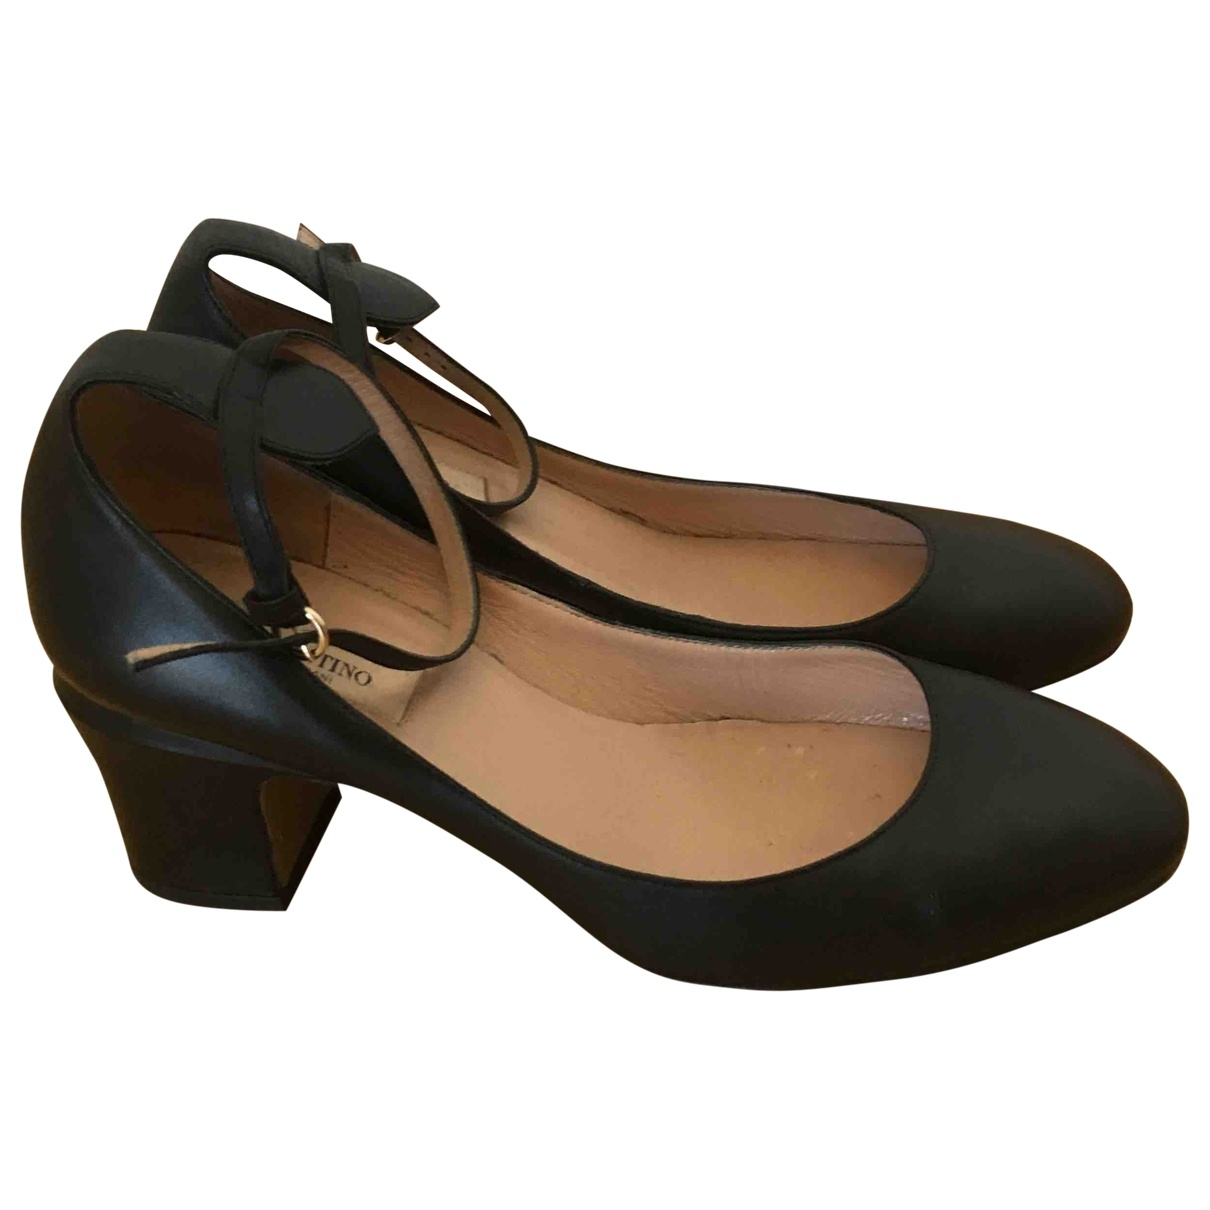 Valentino Garavani Tango Black Leather Heels for Women 37 EU